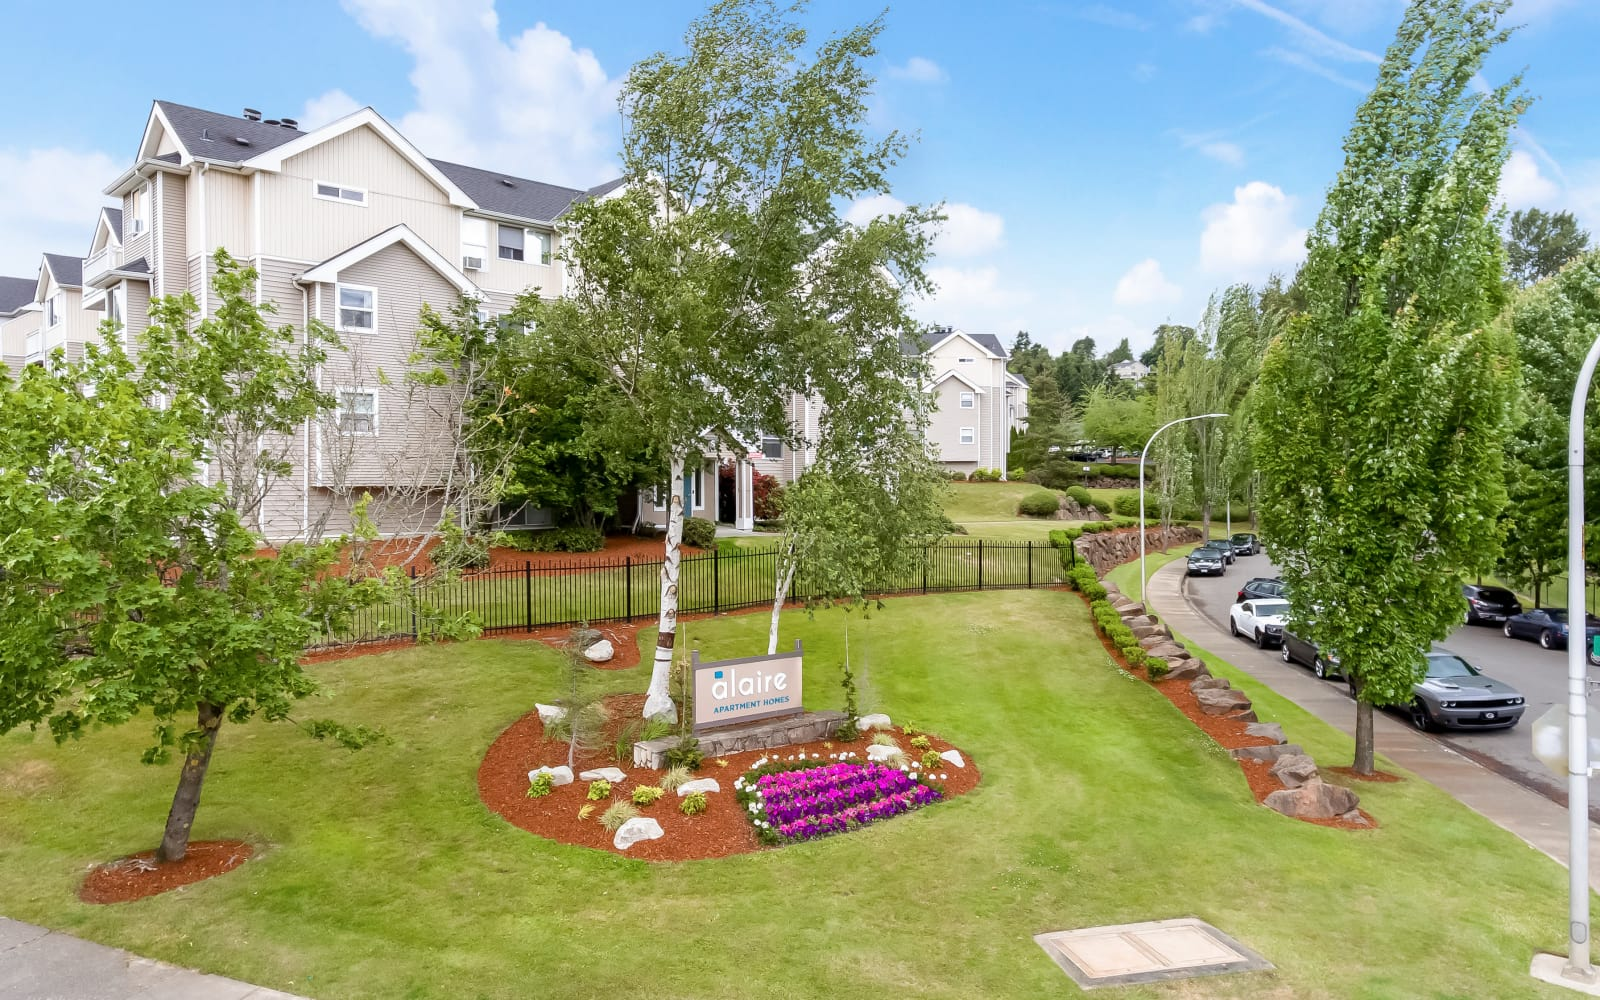 Lovely landscaping outside of Alaire Apartments in Renton, Washington